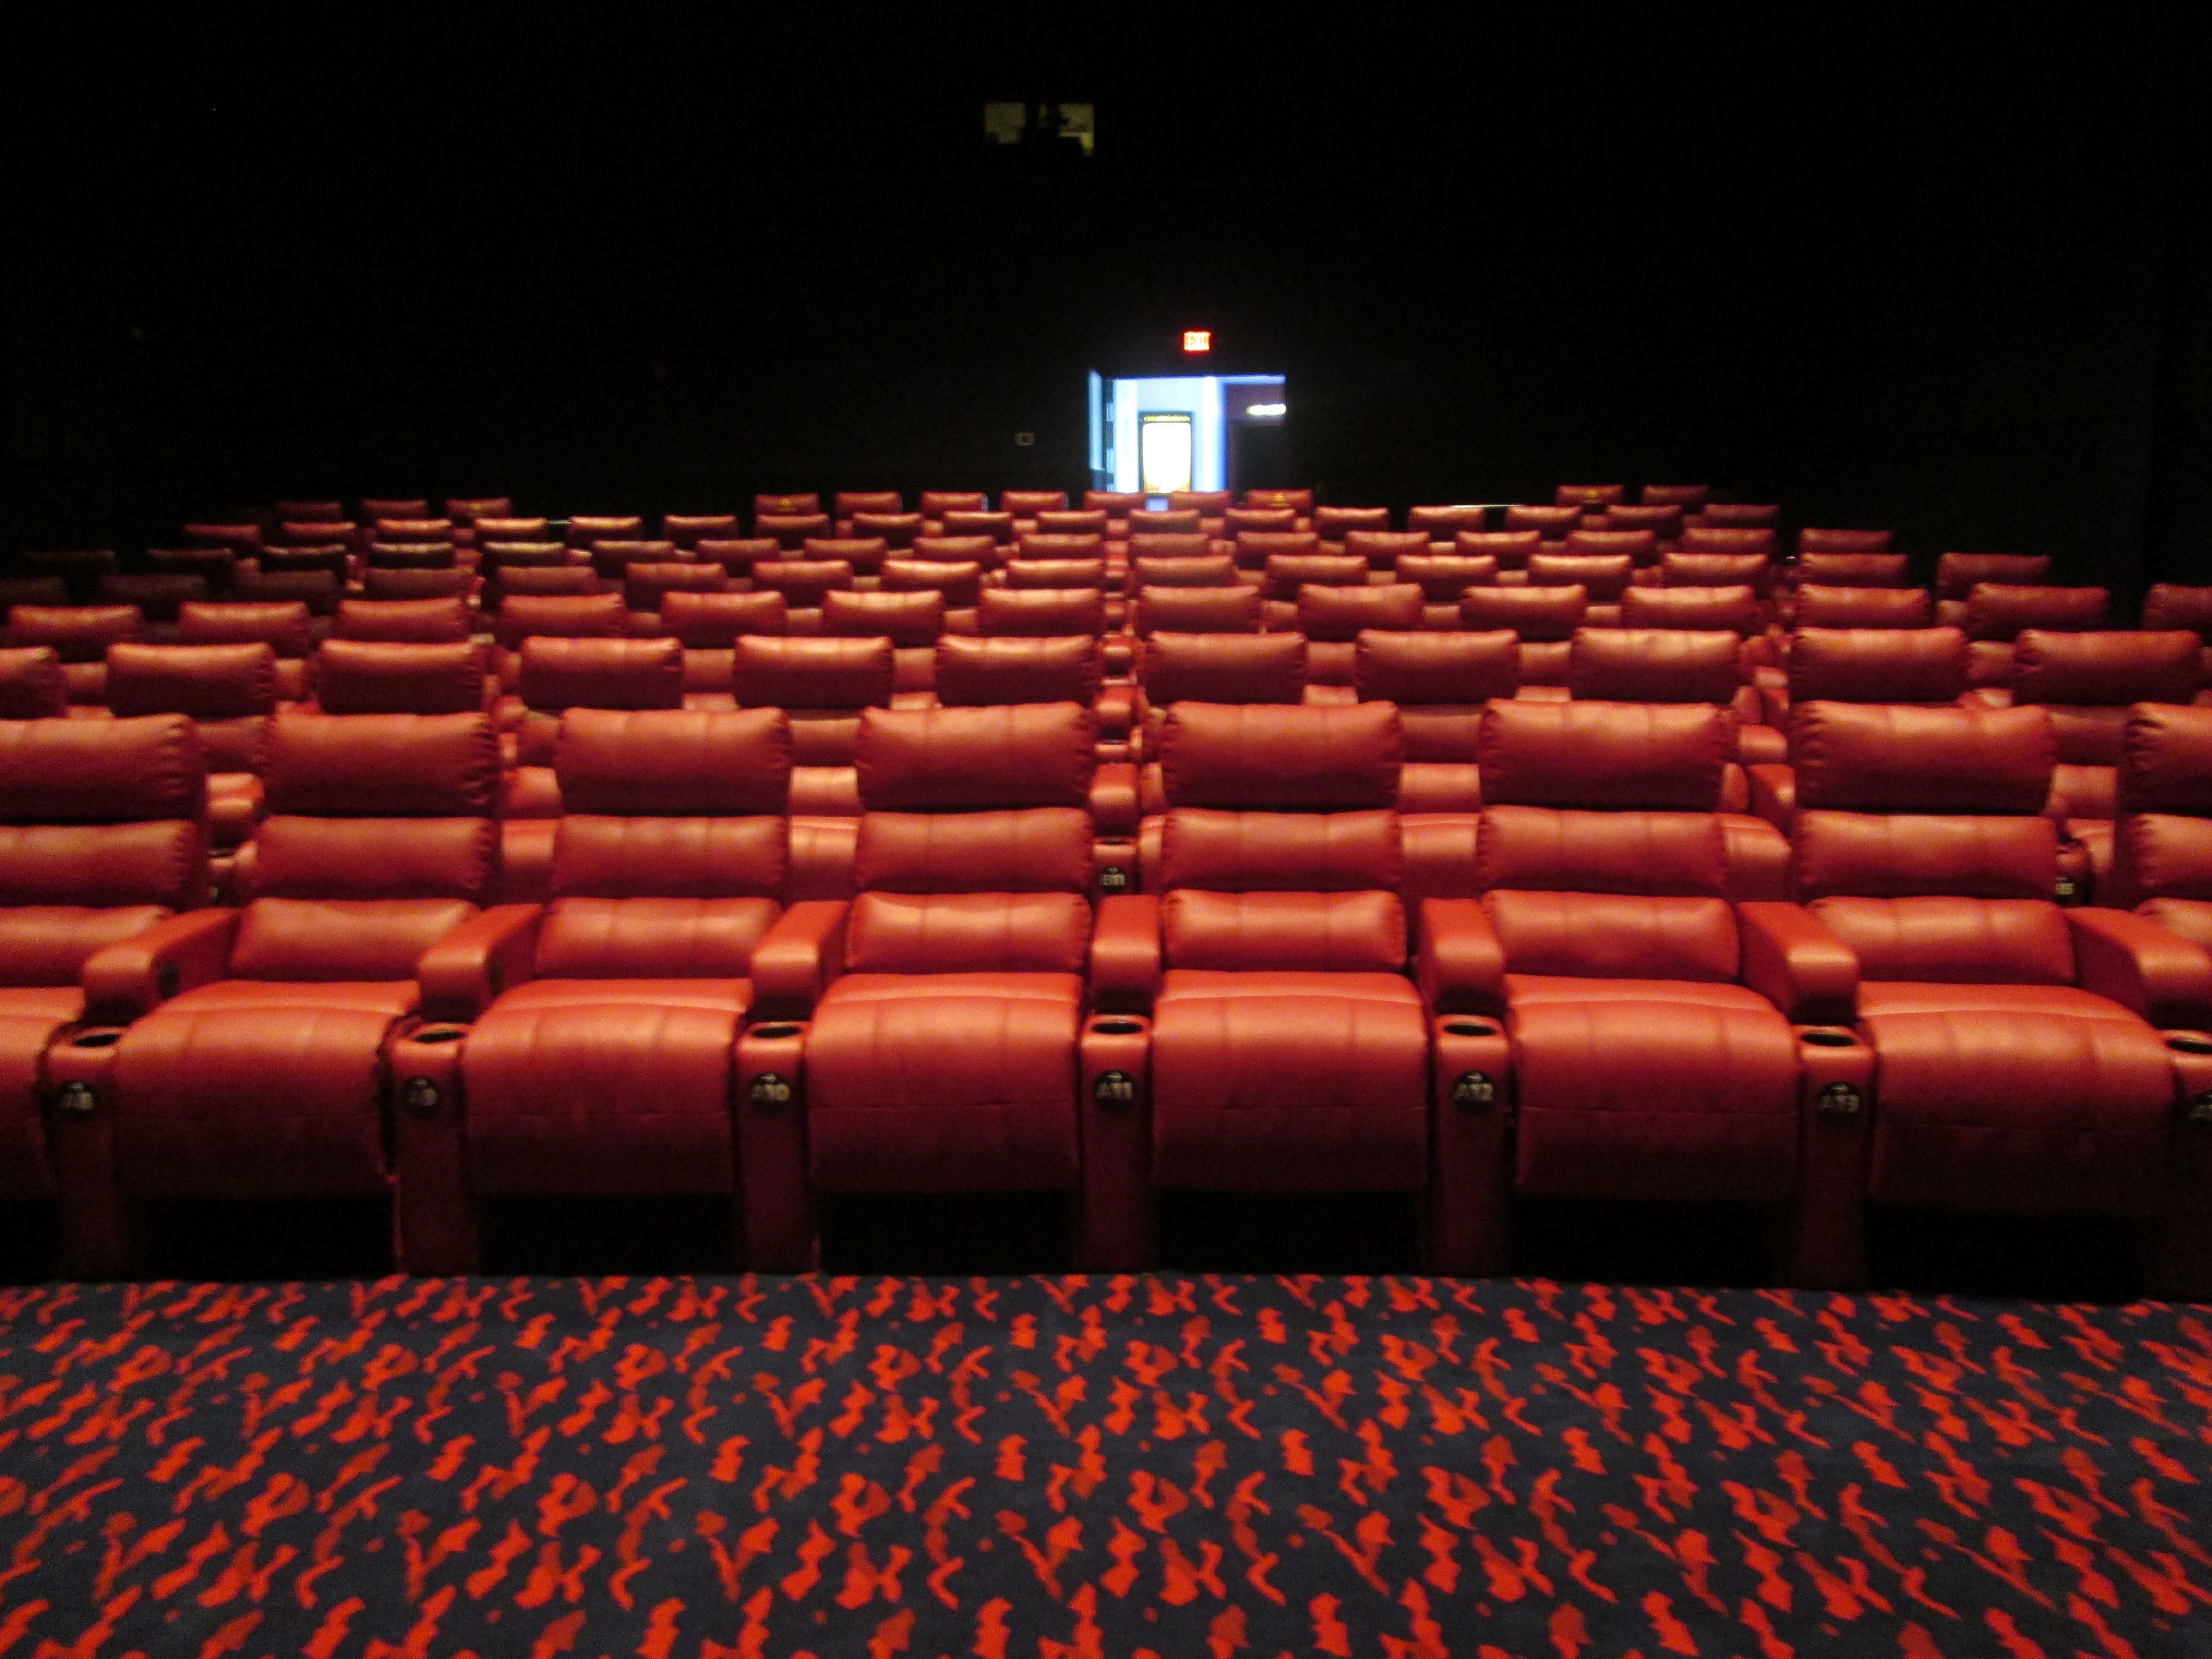 fox sun surf cinema debuts enhanced movie experience with